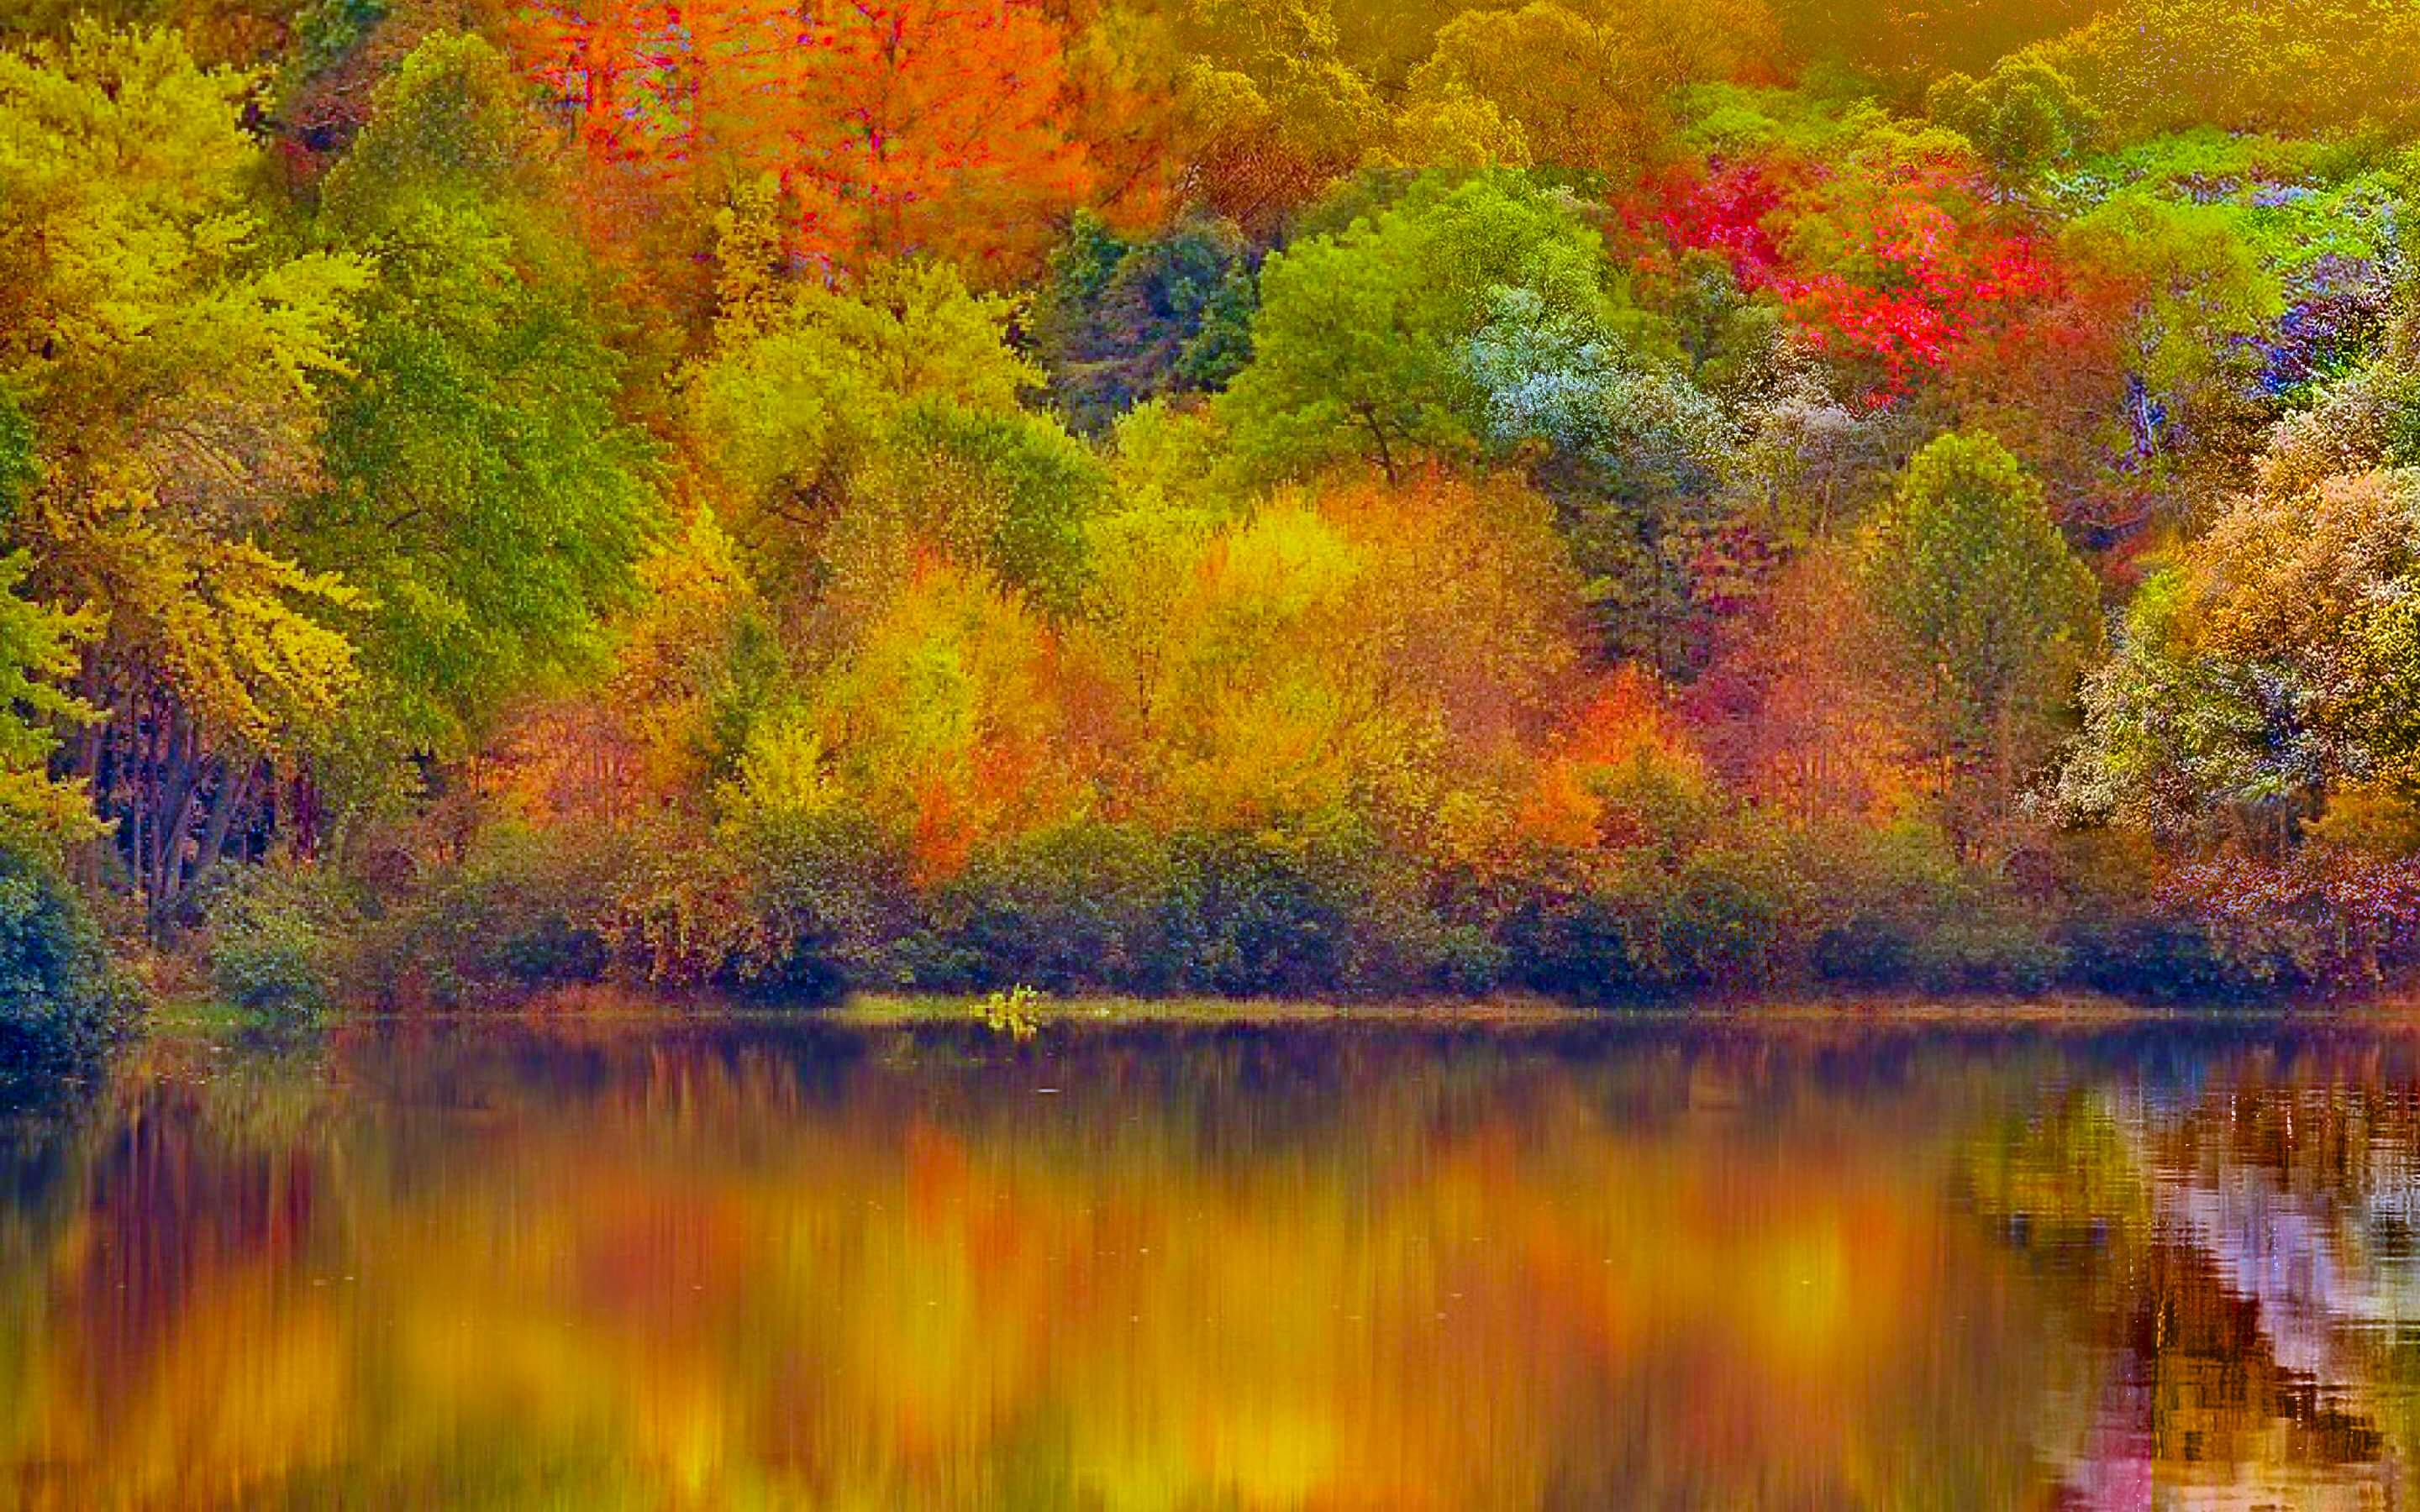 Cozy Fall Wallpaper 21 Season Wallpapers Backgrounds Images Autumn